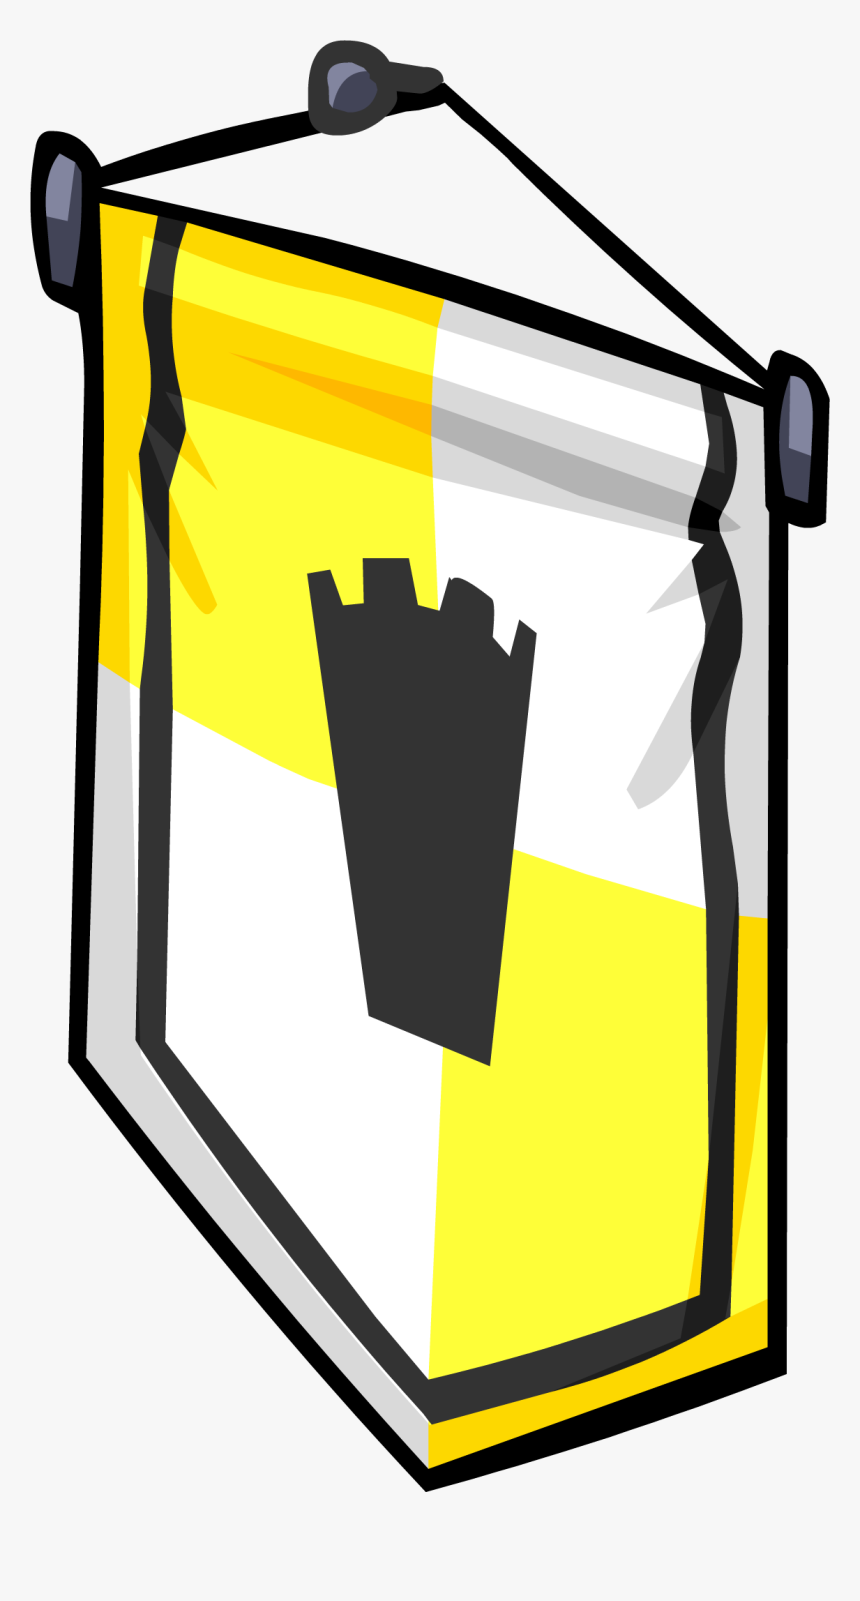 Ye Olde Yellow Banner Sprite - Portable Network Graphics, HD Png Download, Free Download